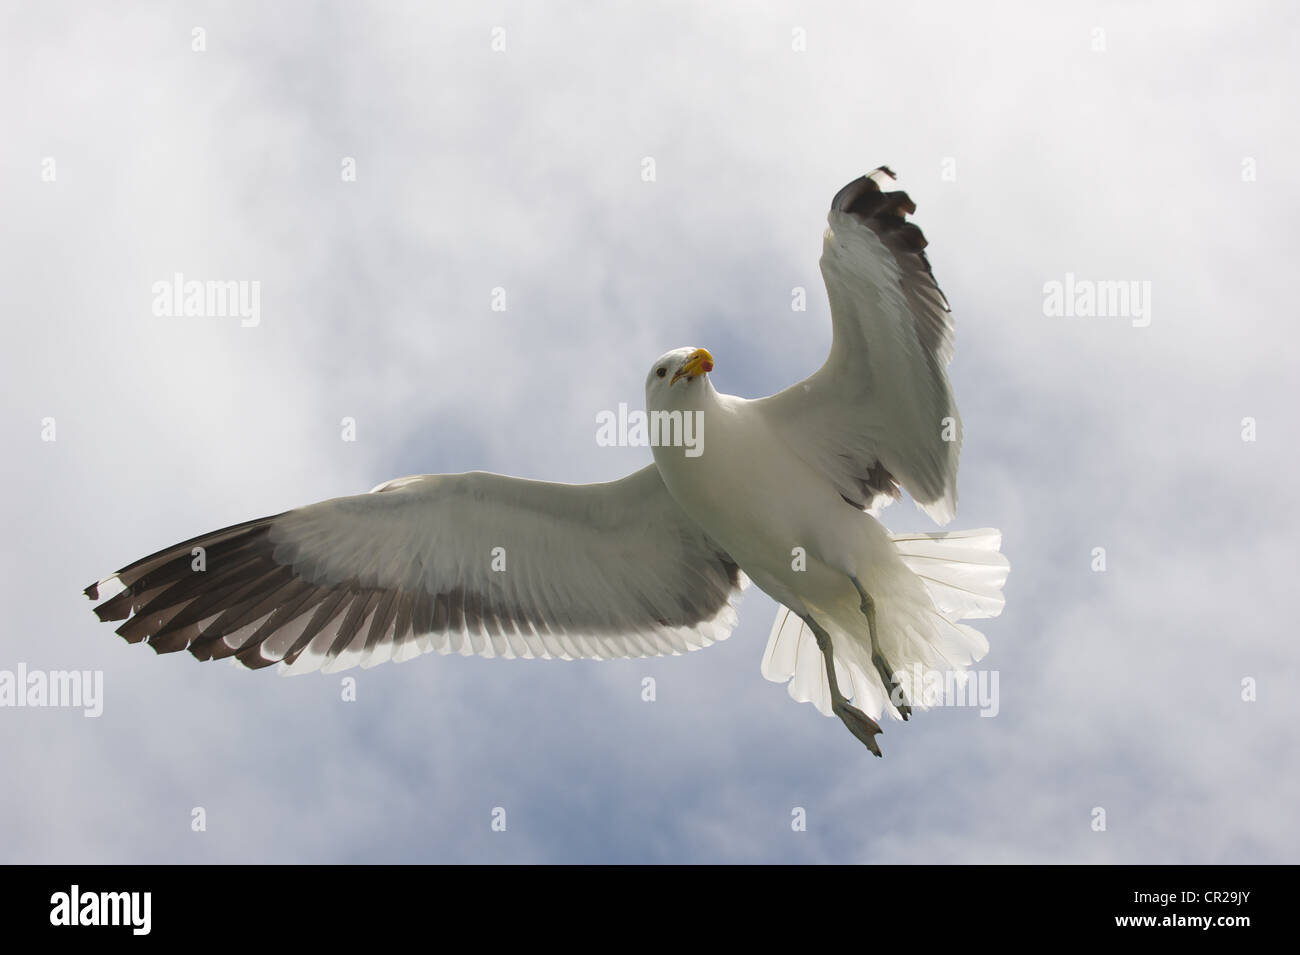 Sea Gull (Laridae) in flight seen from below, Walvis Bay, Namibia - Stock Image